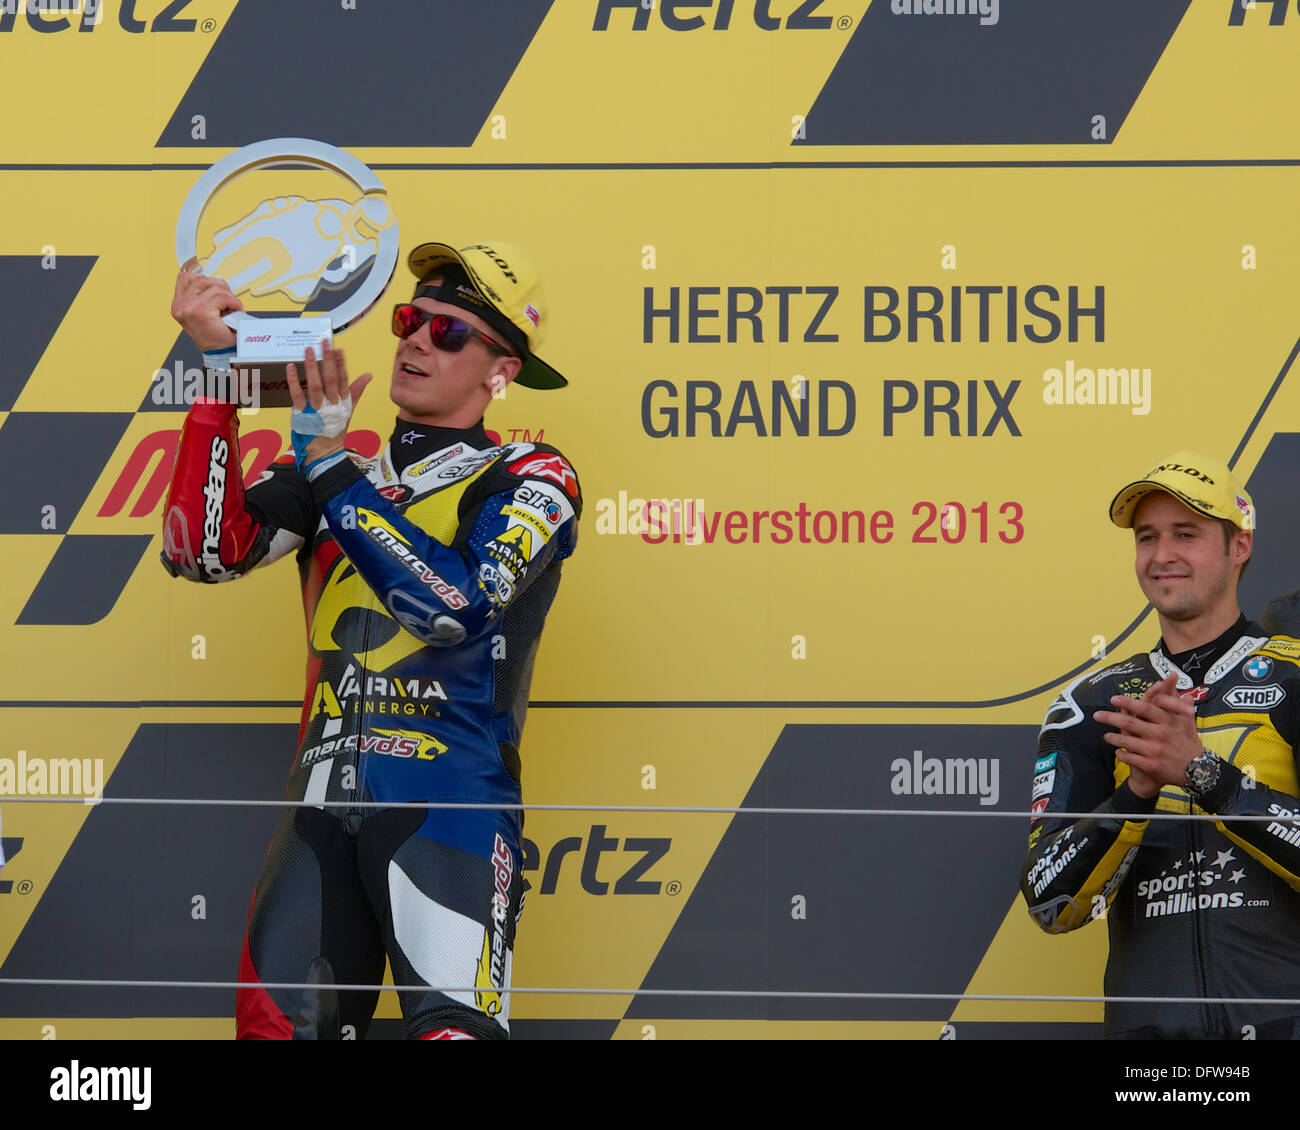 Scott Redding holds up the winners trophy after finishing first in the Moto2 race at Silverstone Circuit - Stock Image